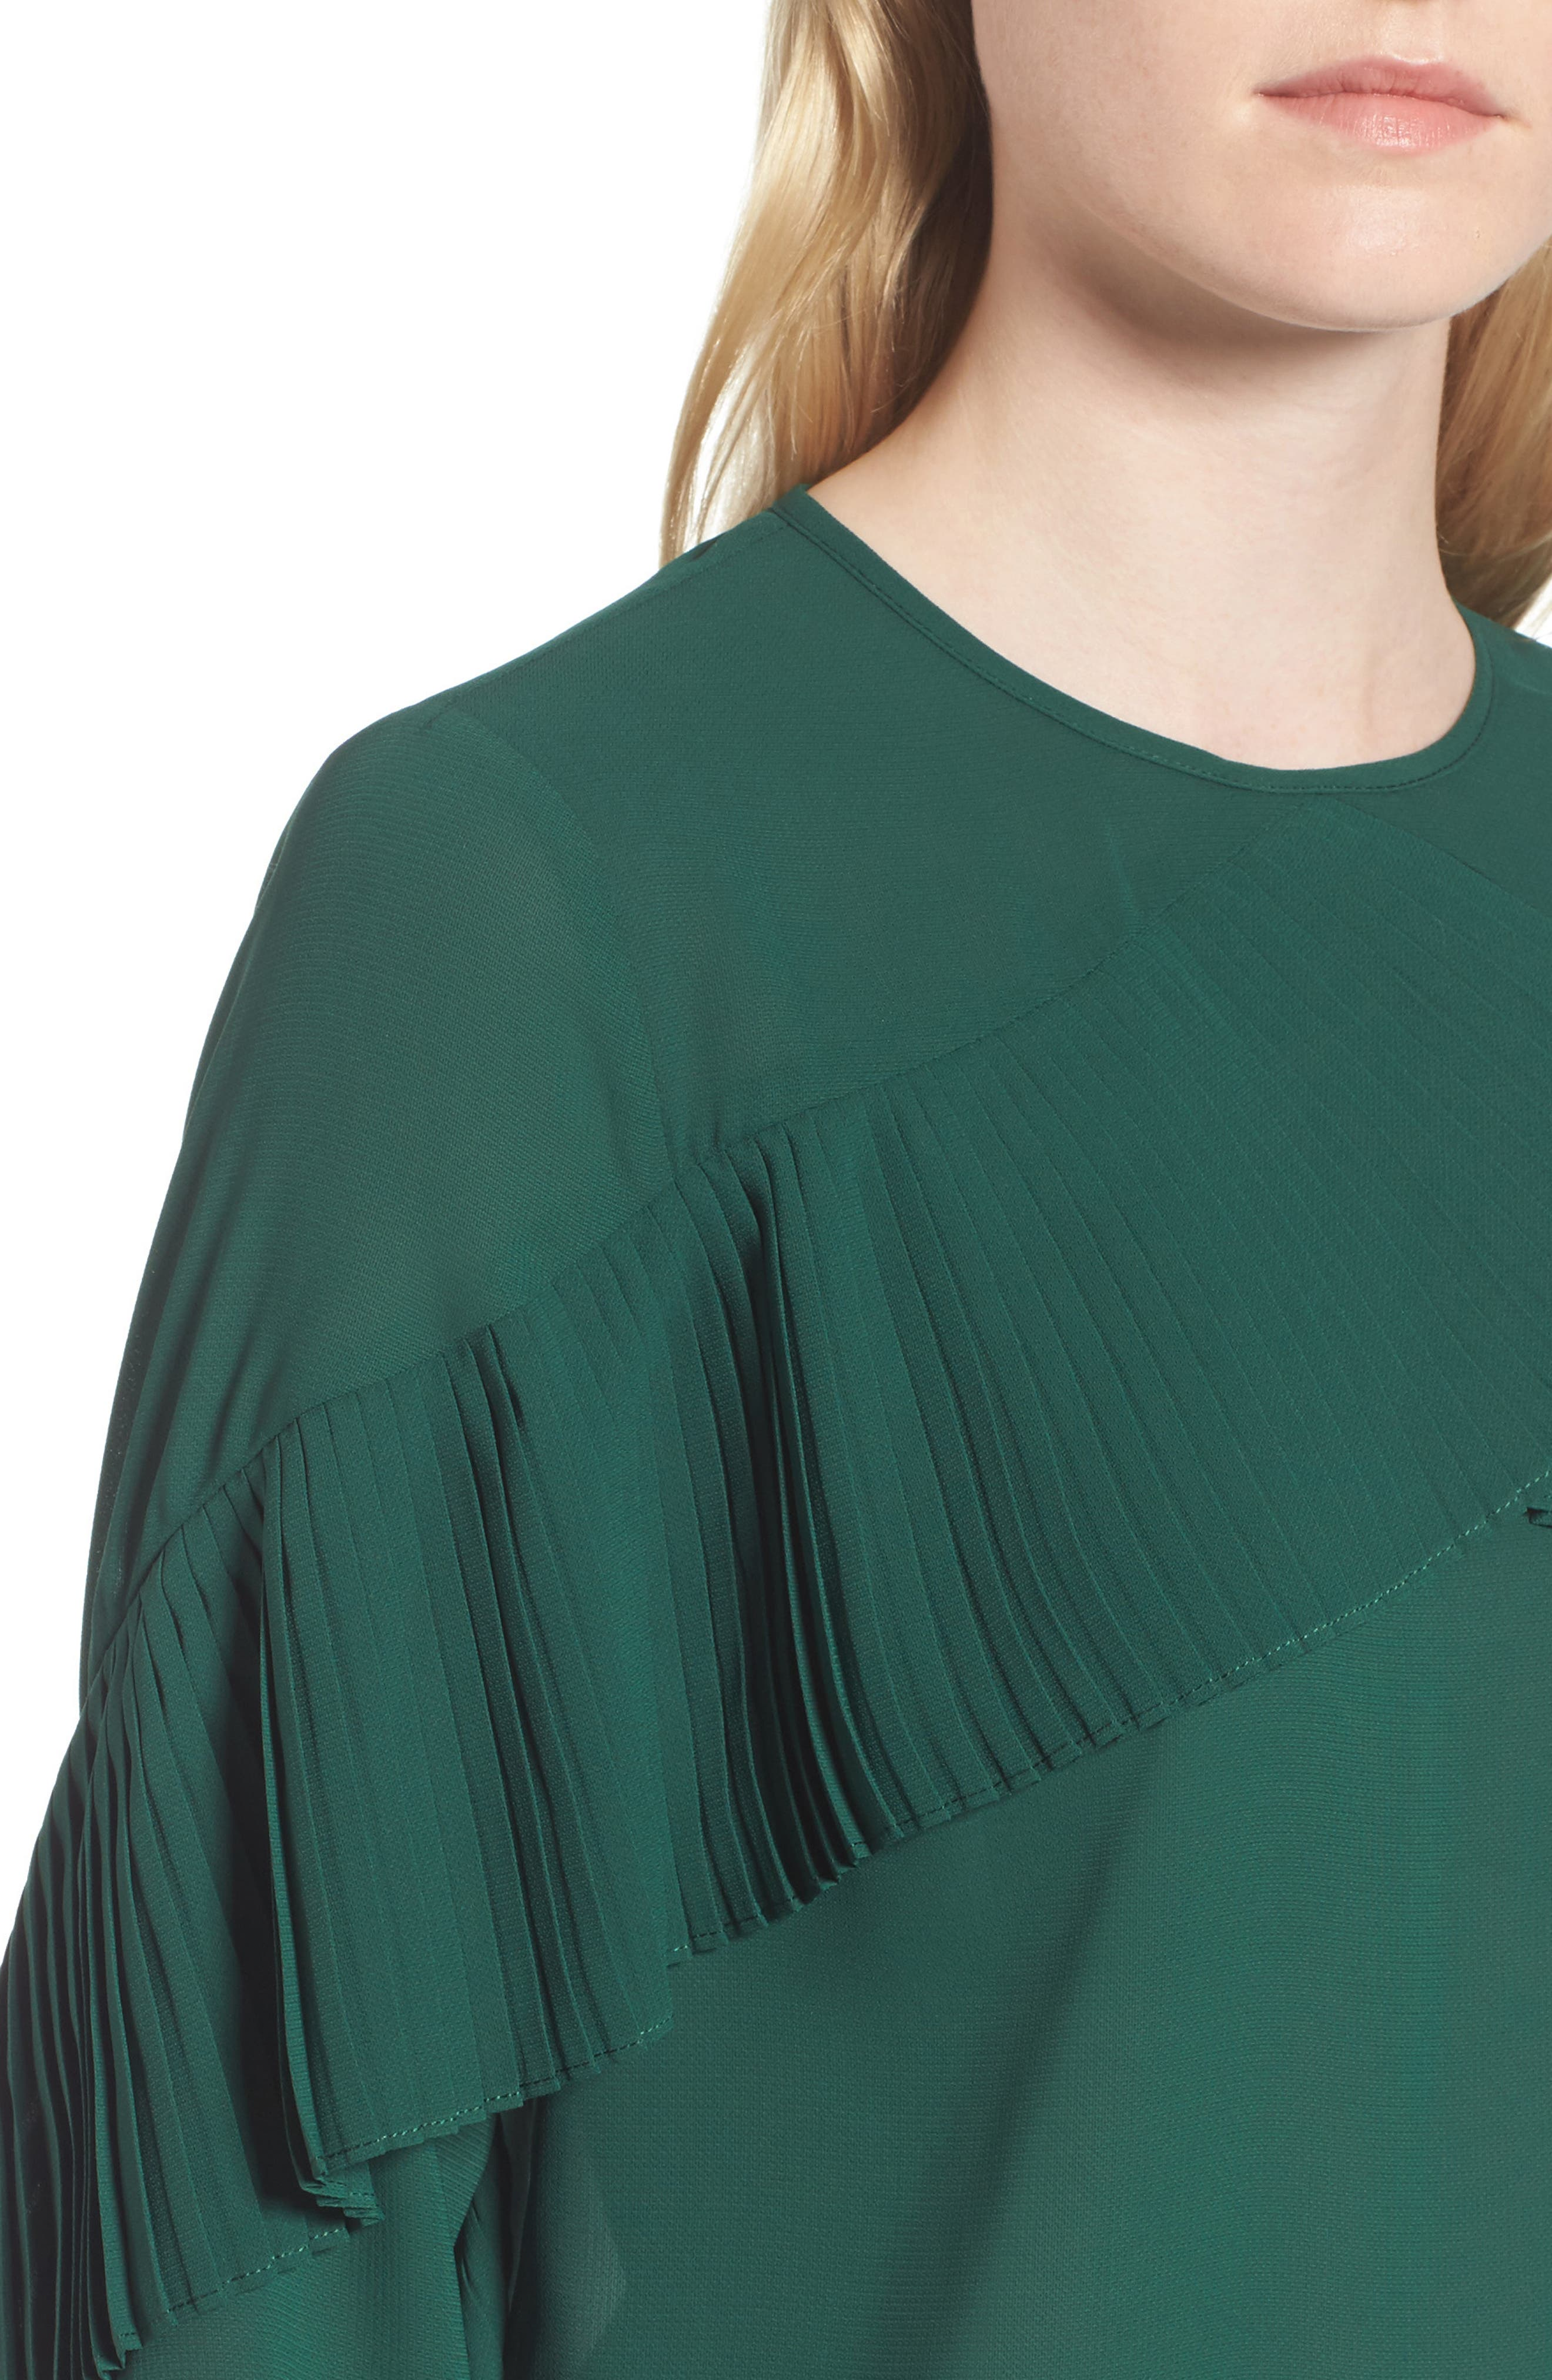 Pleated Ruffle Top,                             Alternate thumbnail 4, color,                             301